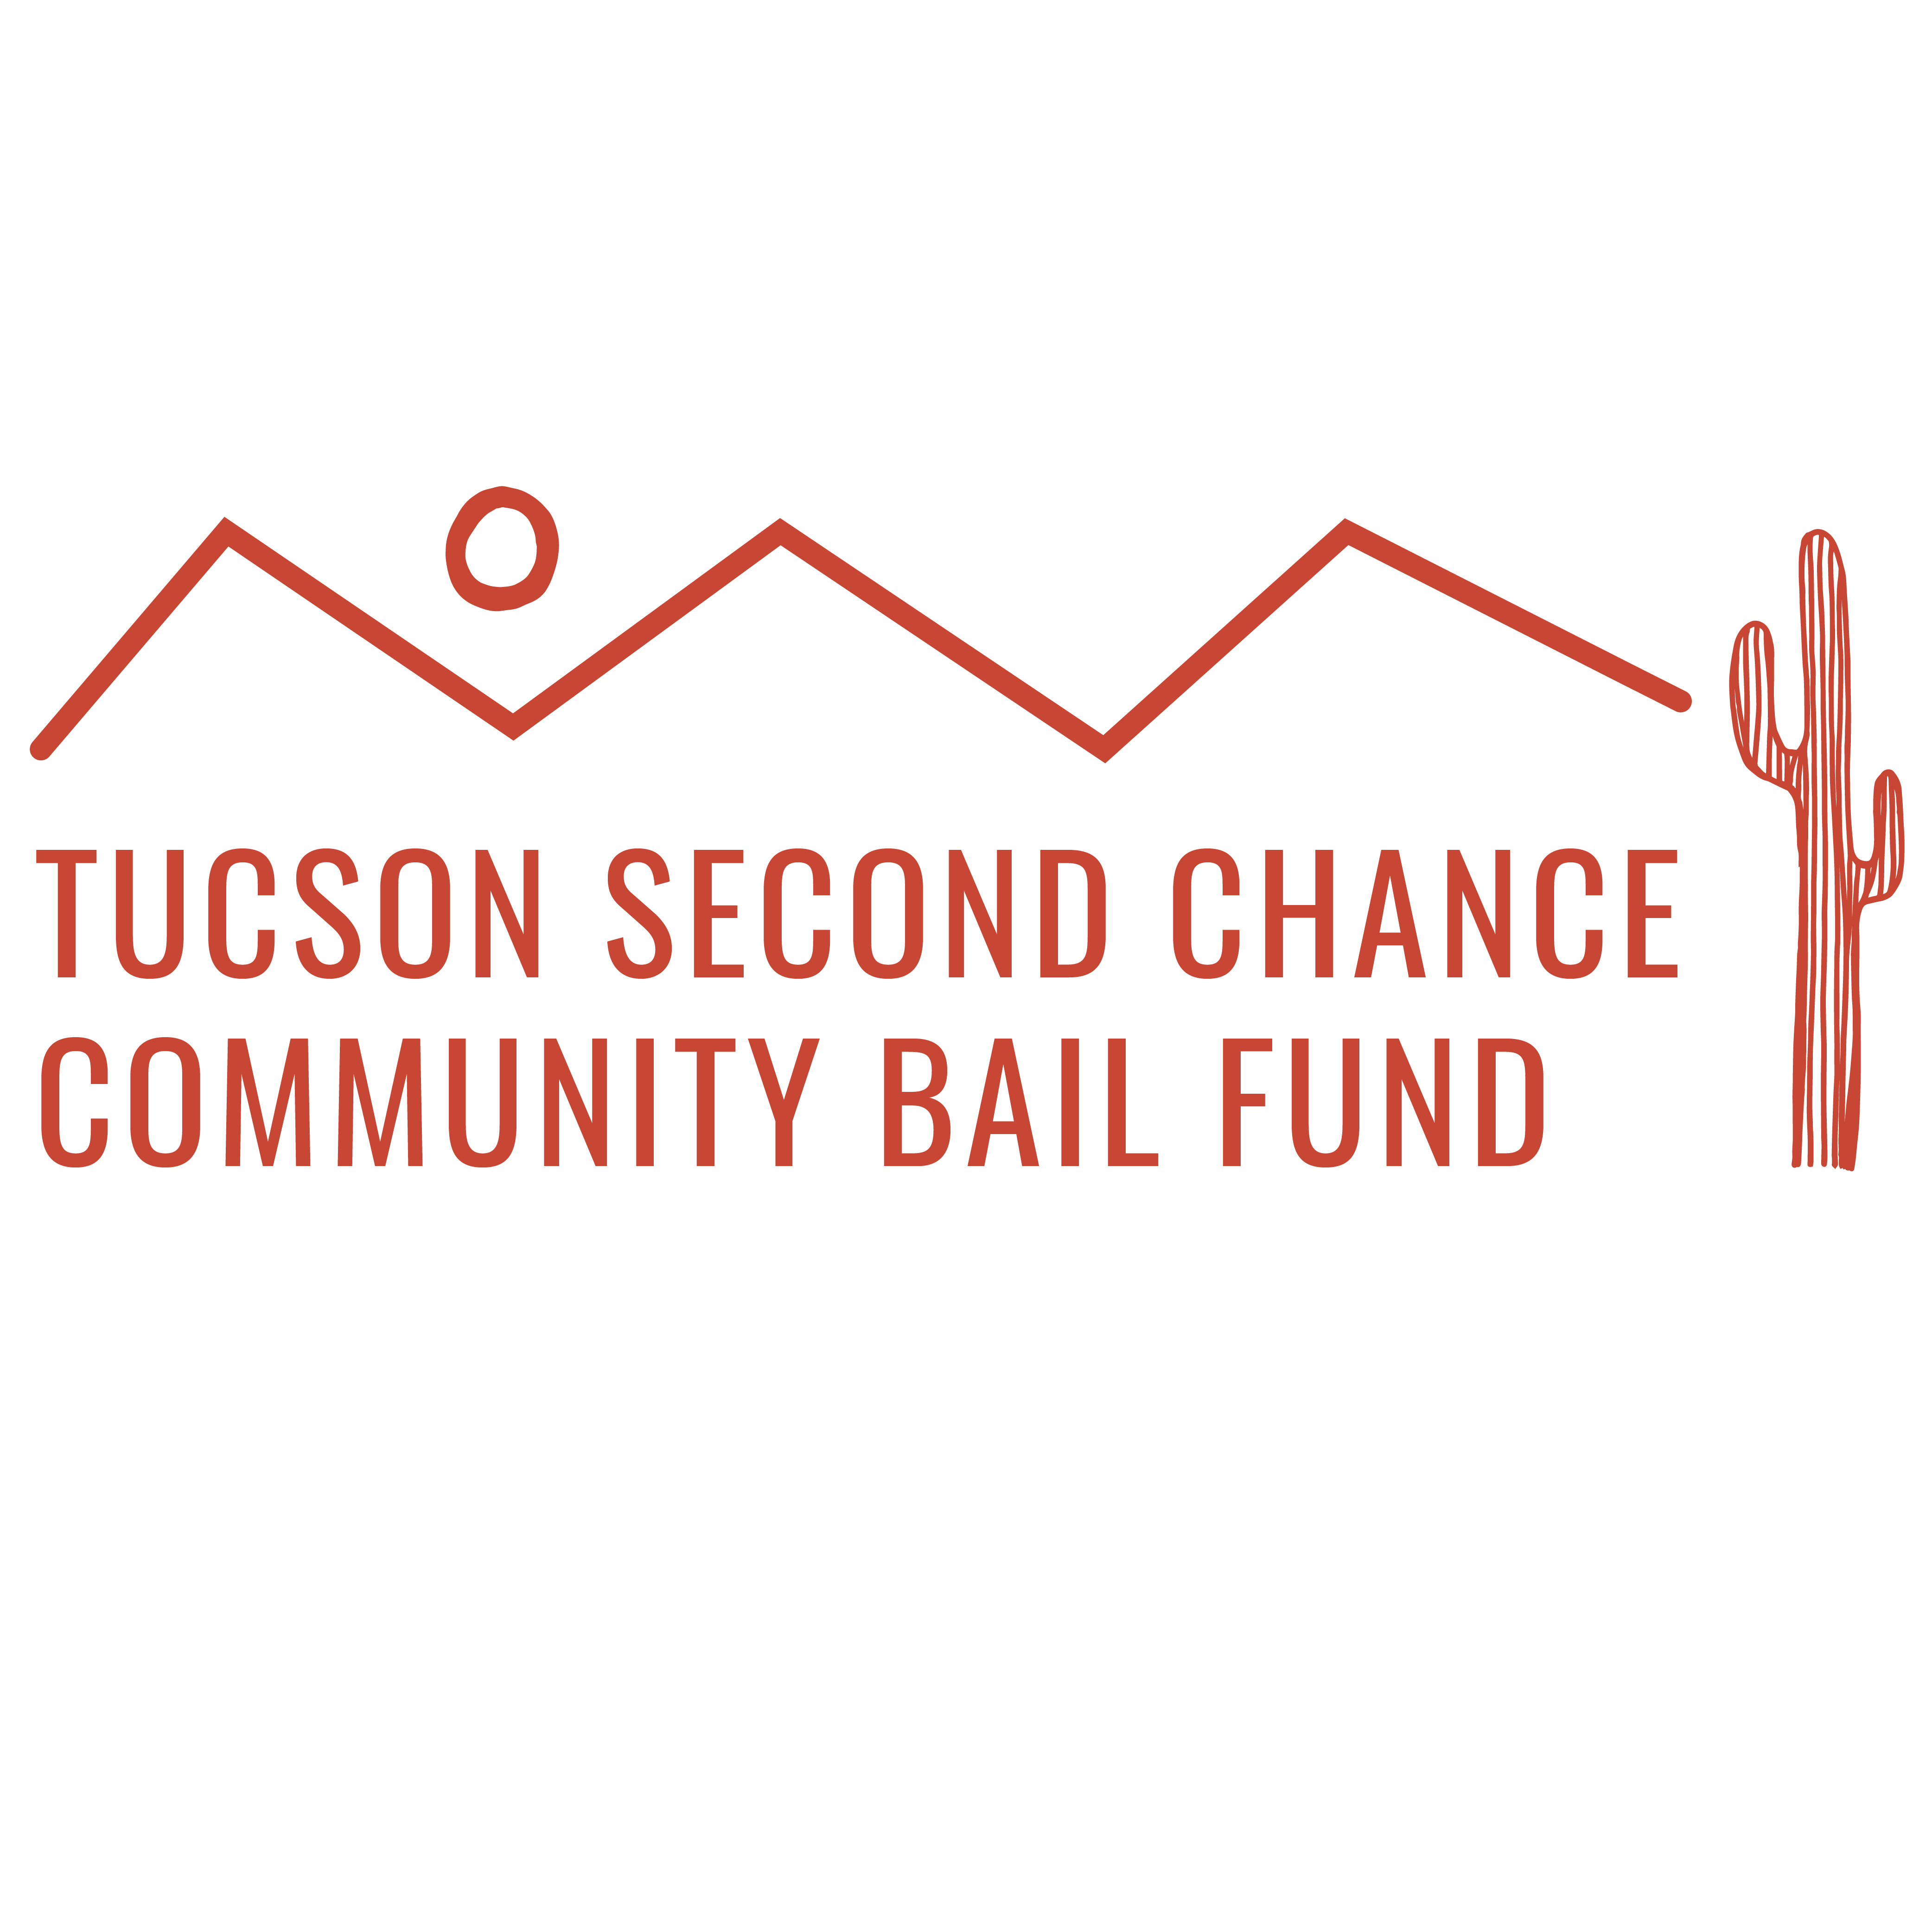 Tucson Second Chance Community Bail Fund